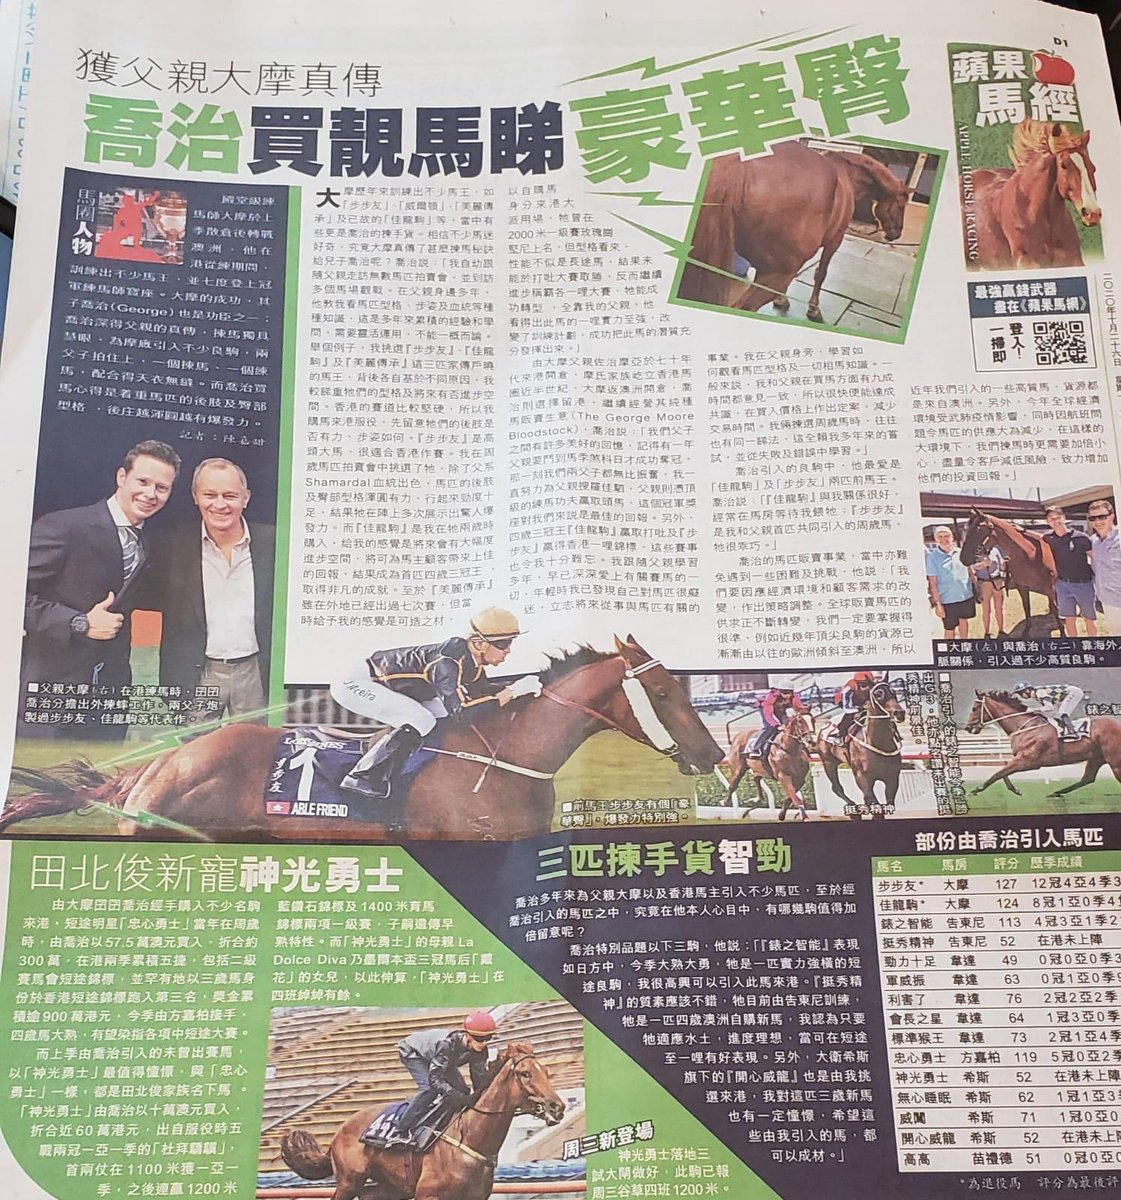 Always nice to get some coverage in the chinese papers ... past and upcoming horses racing. Stay tuned #vector #computerpatch #ablefriend https://t.co/1GxzrgQuj8